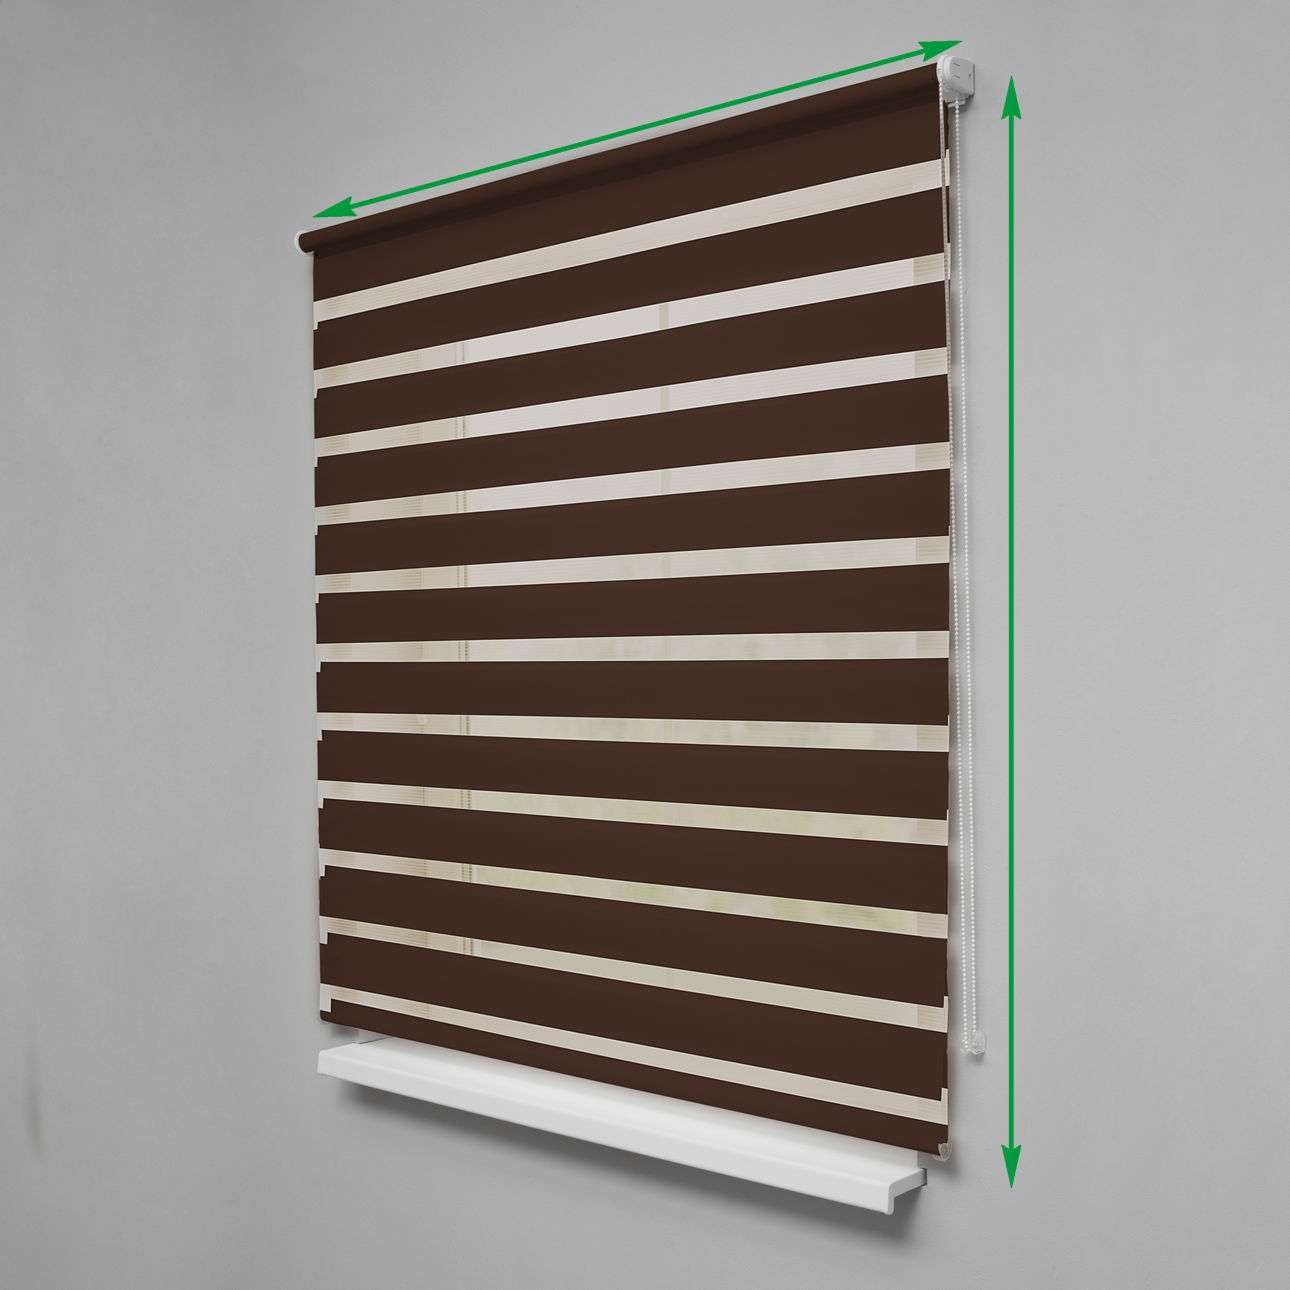 Day & Night Roller Blind in collection Roller blinds Day & Night (Venetian blind), fabric: 0216